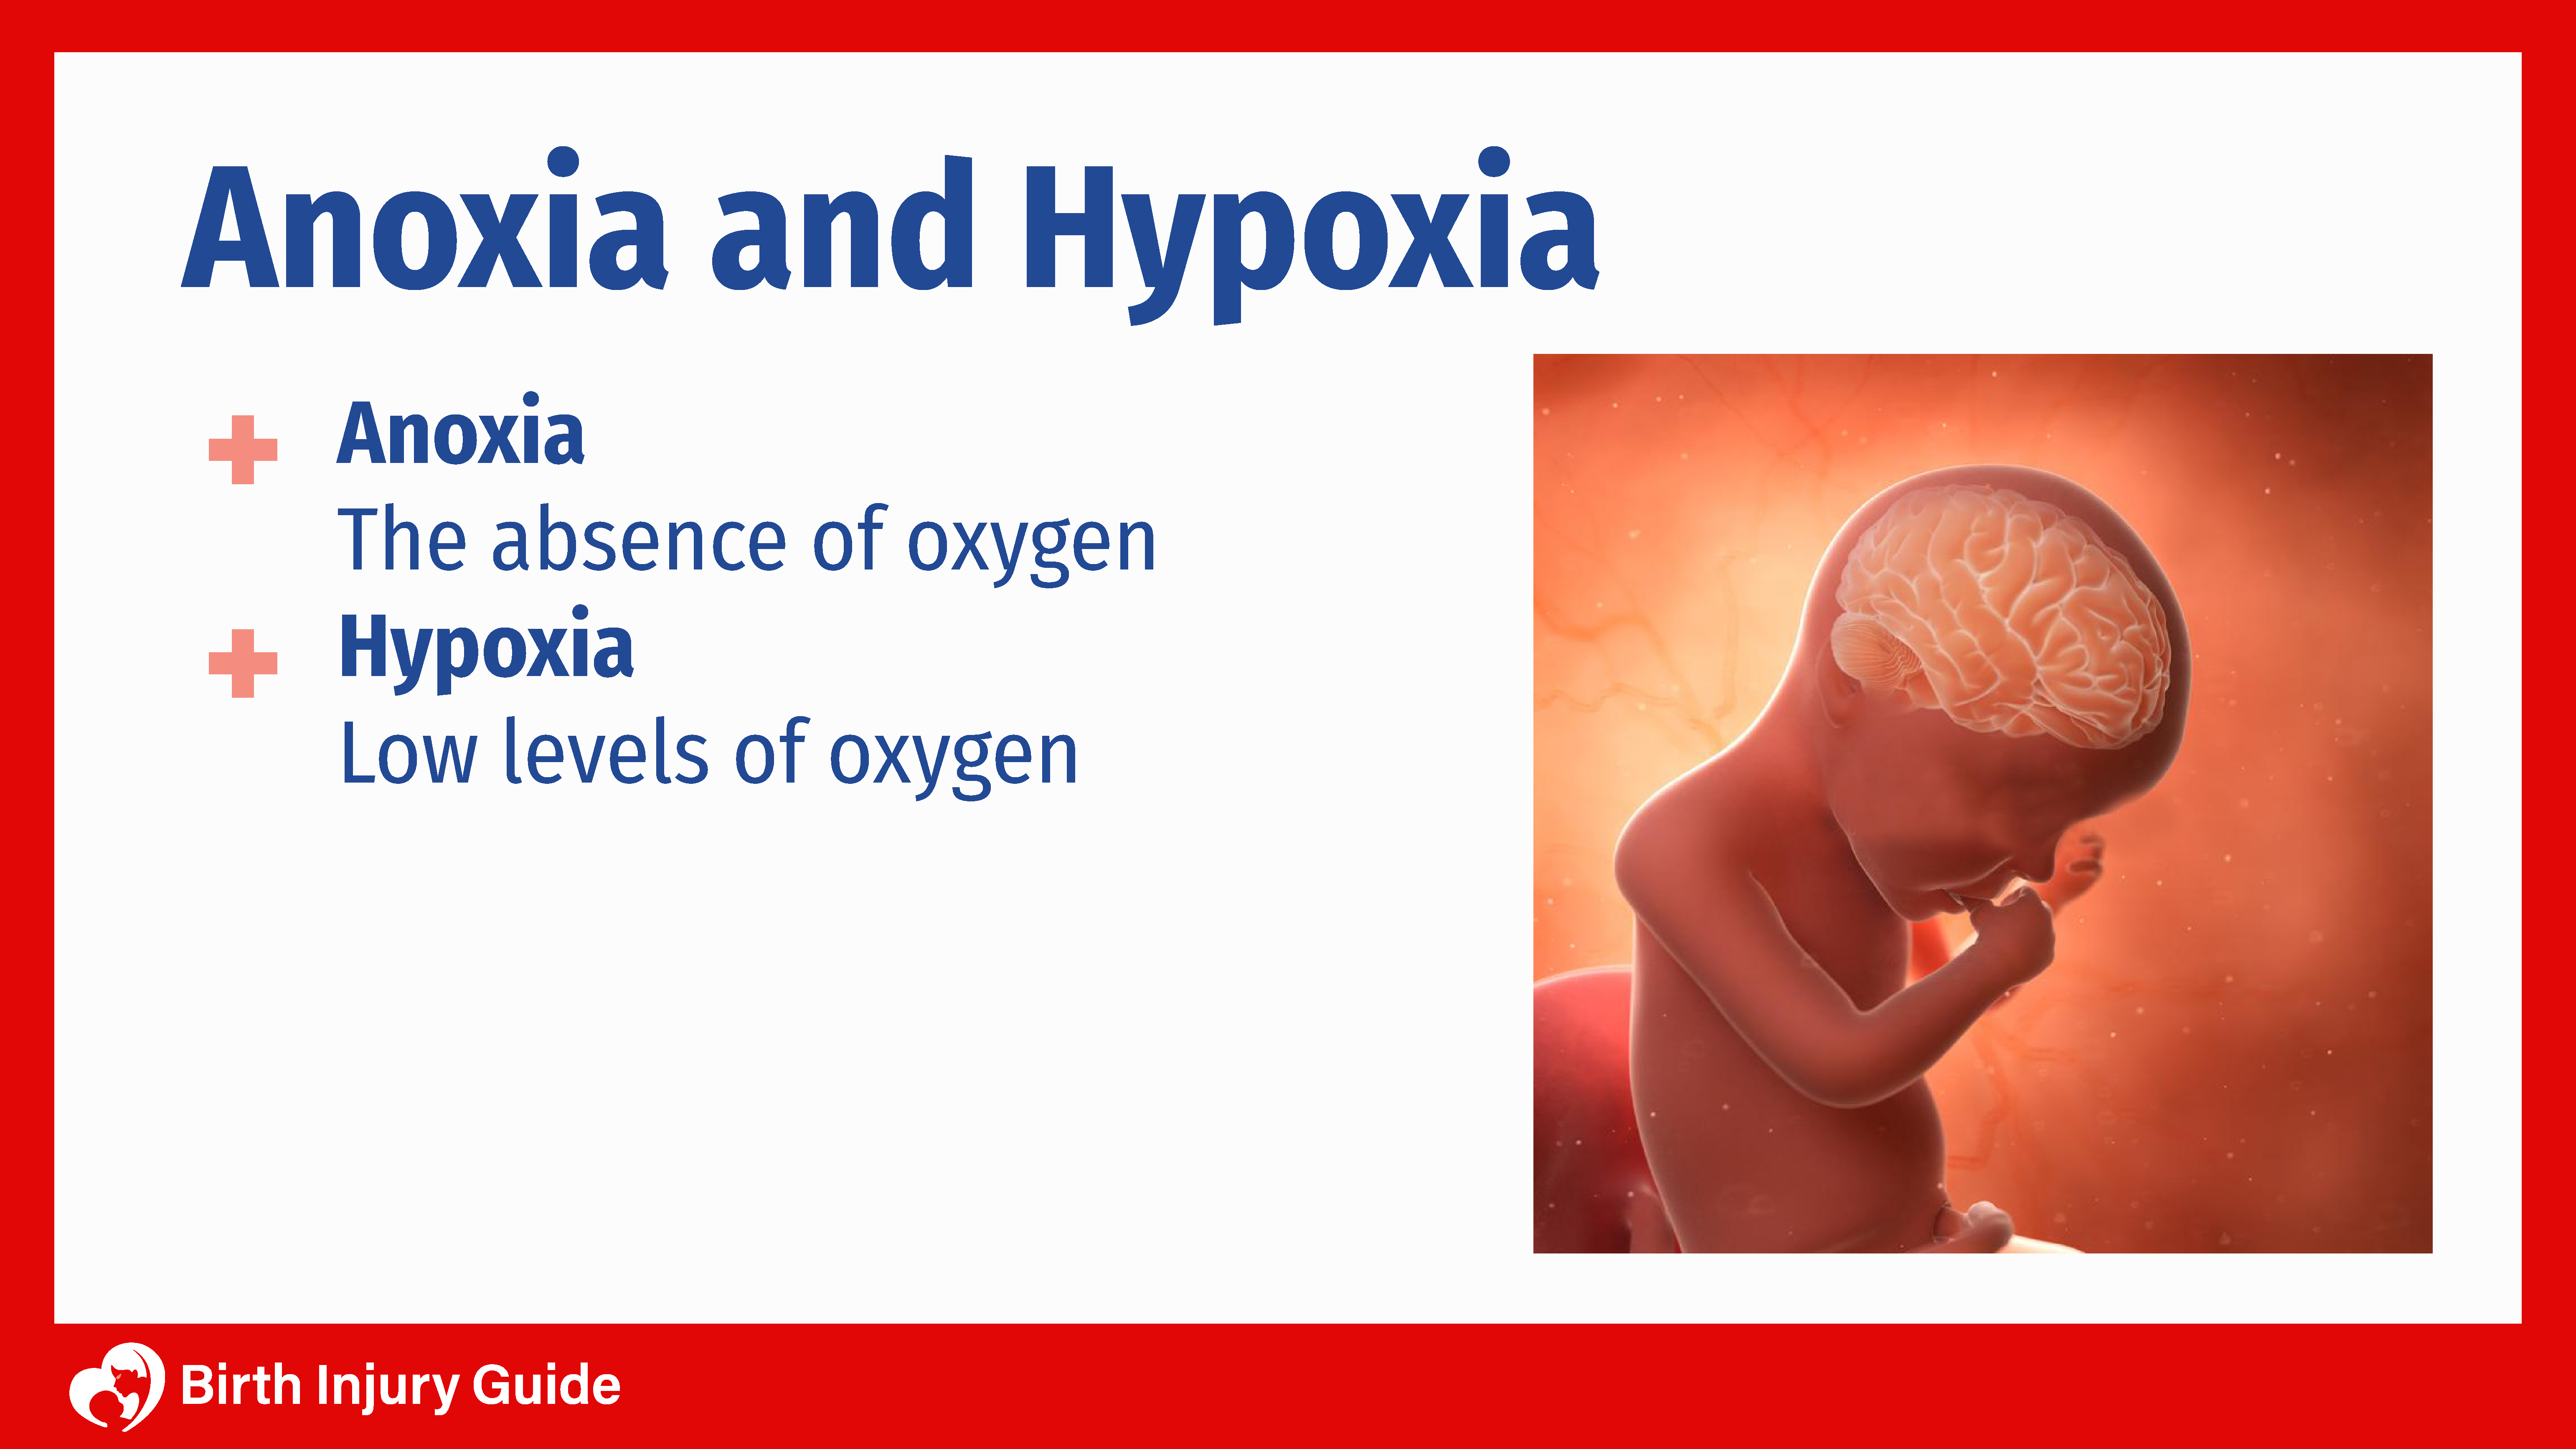 anoxia and hypoxia